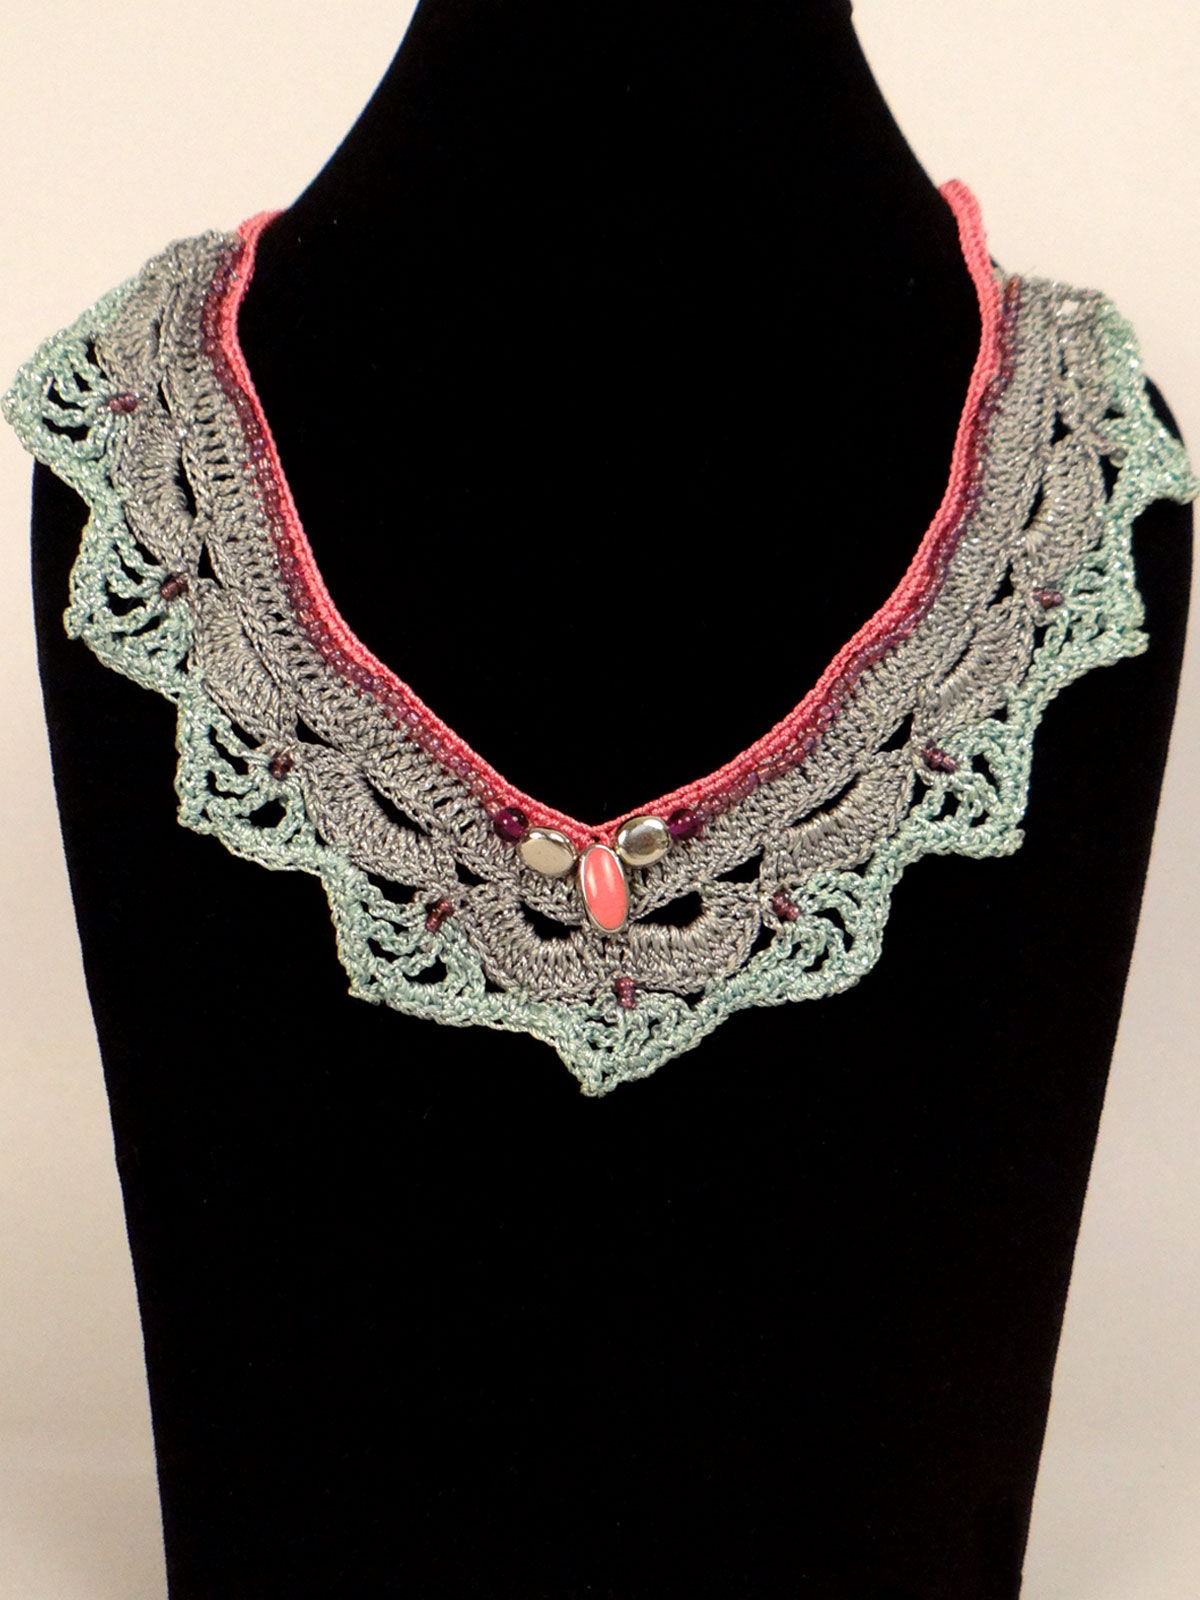 Light green crochet fabric necklace with orange tint